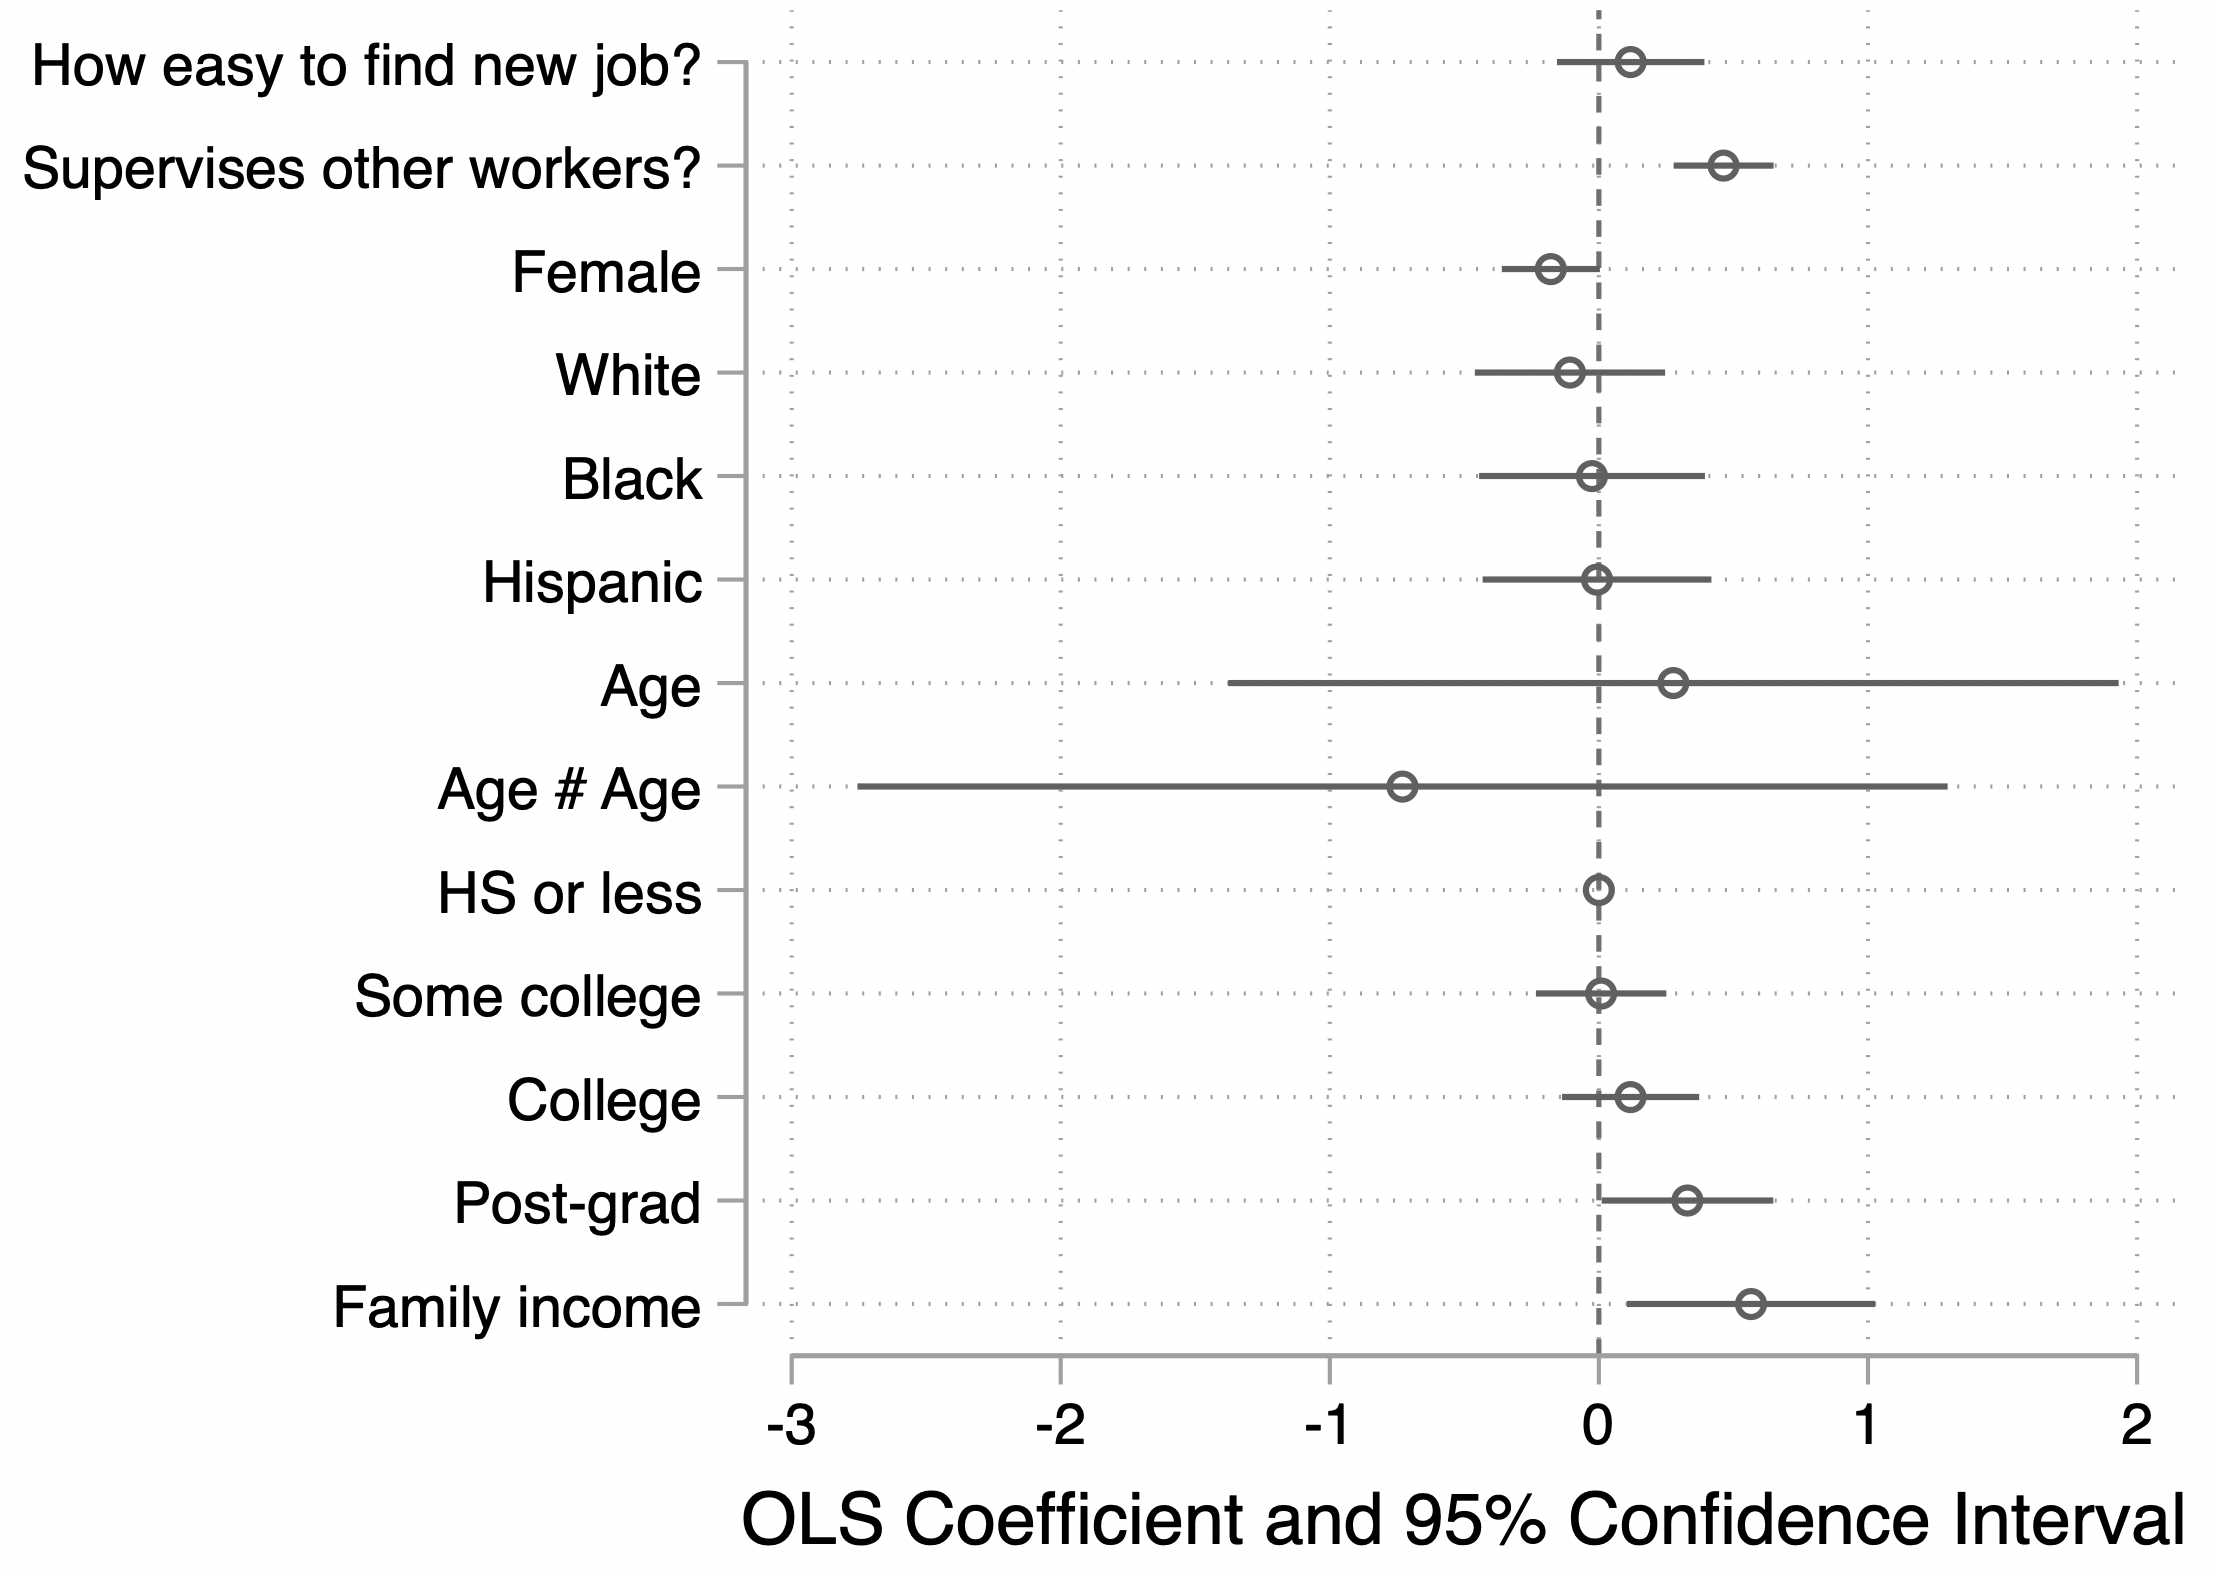 Predicting frequency of political discussion at work (0-4 scale): Labor market power as predictor